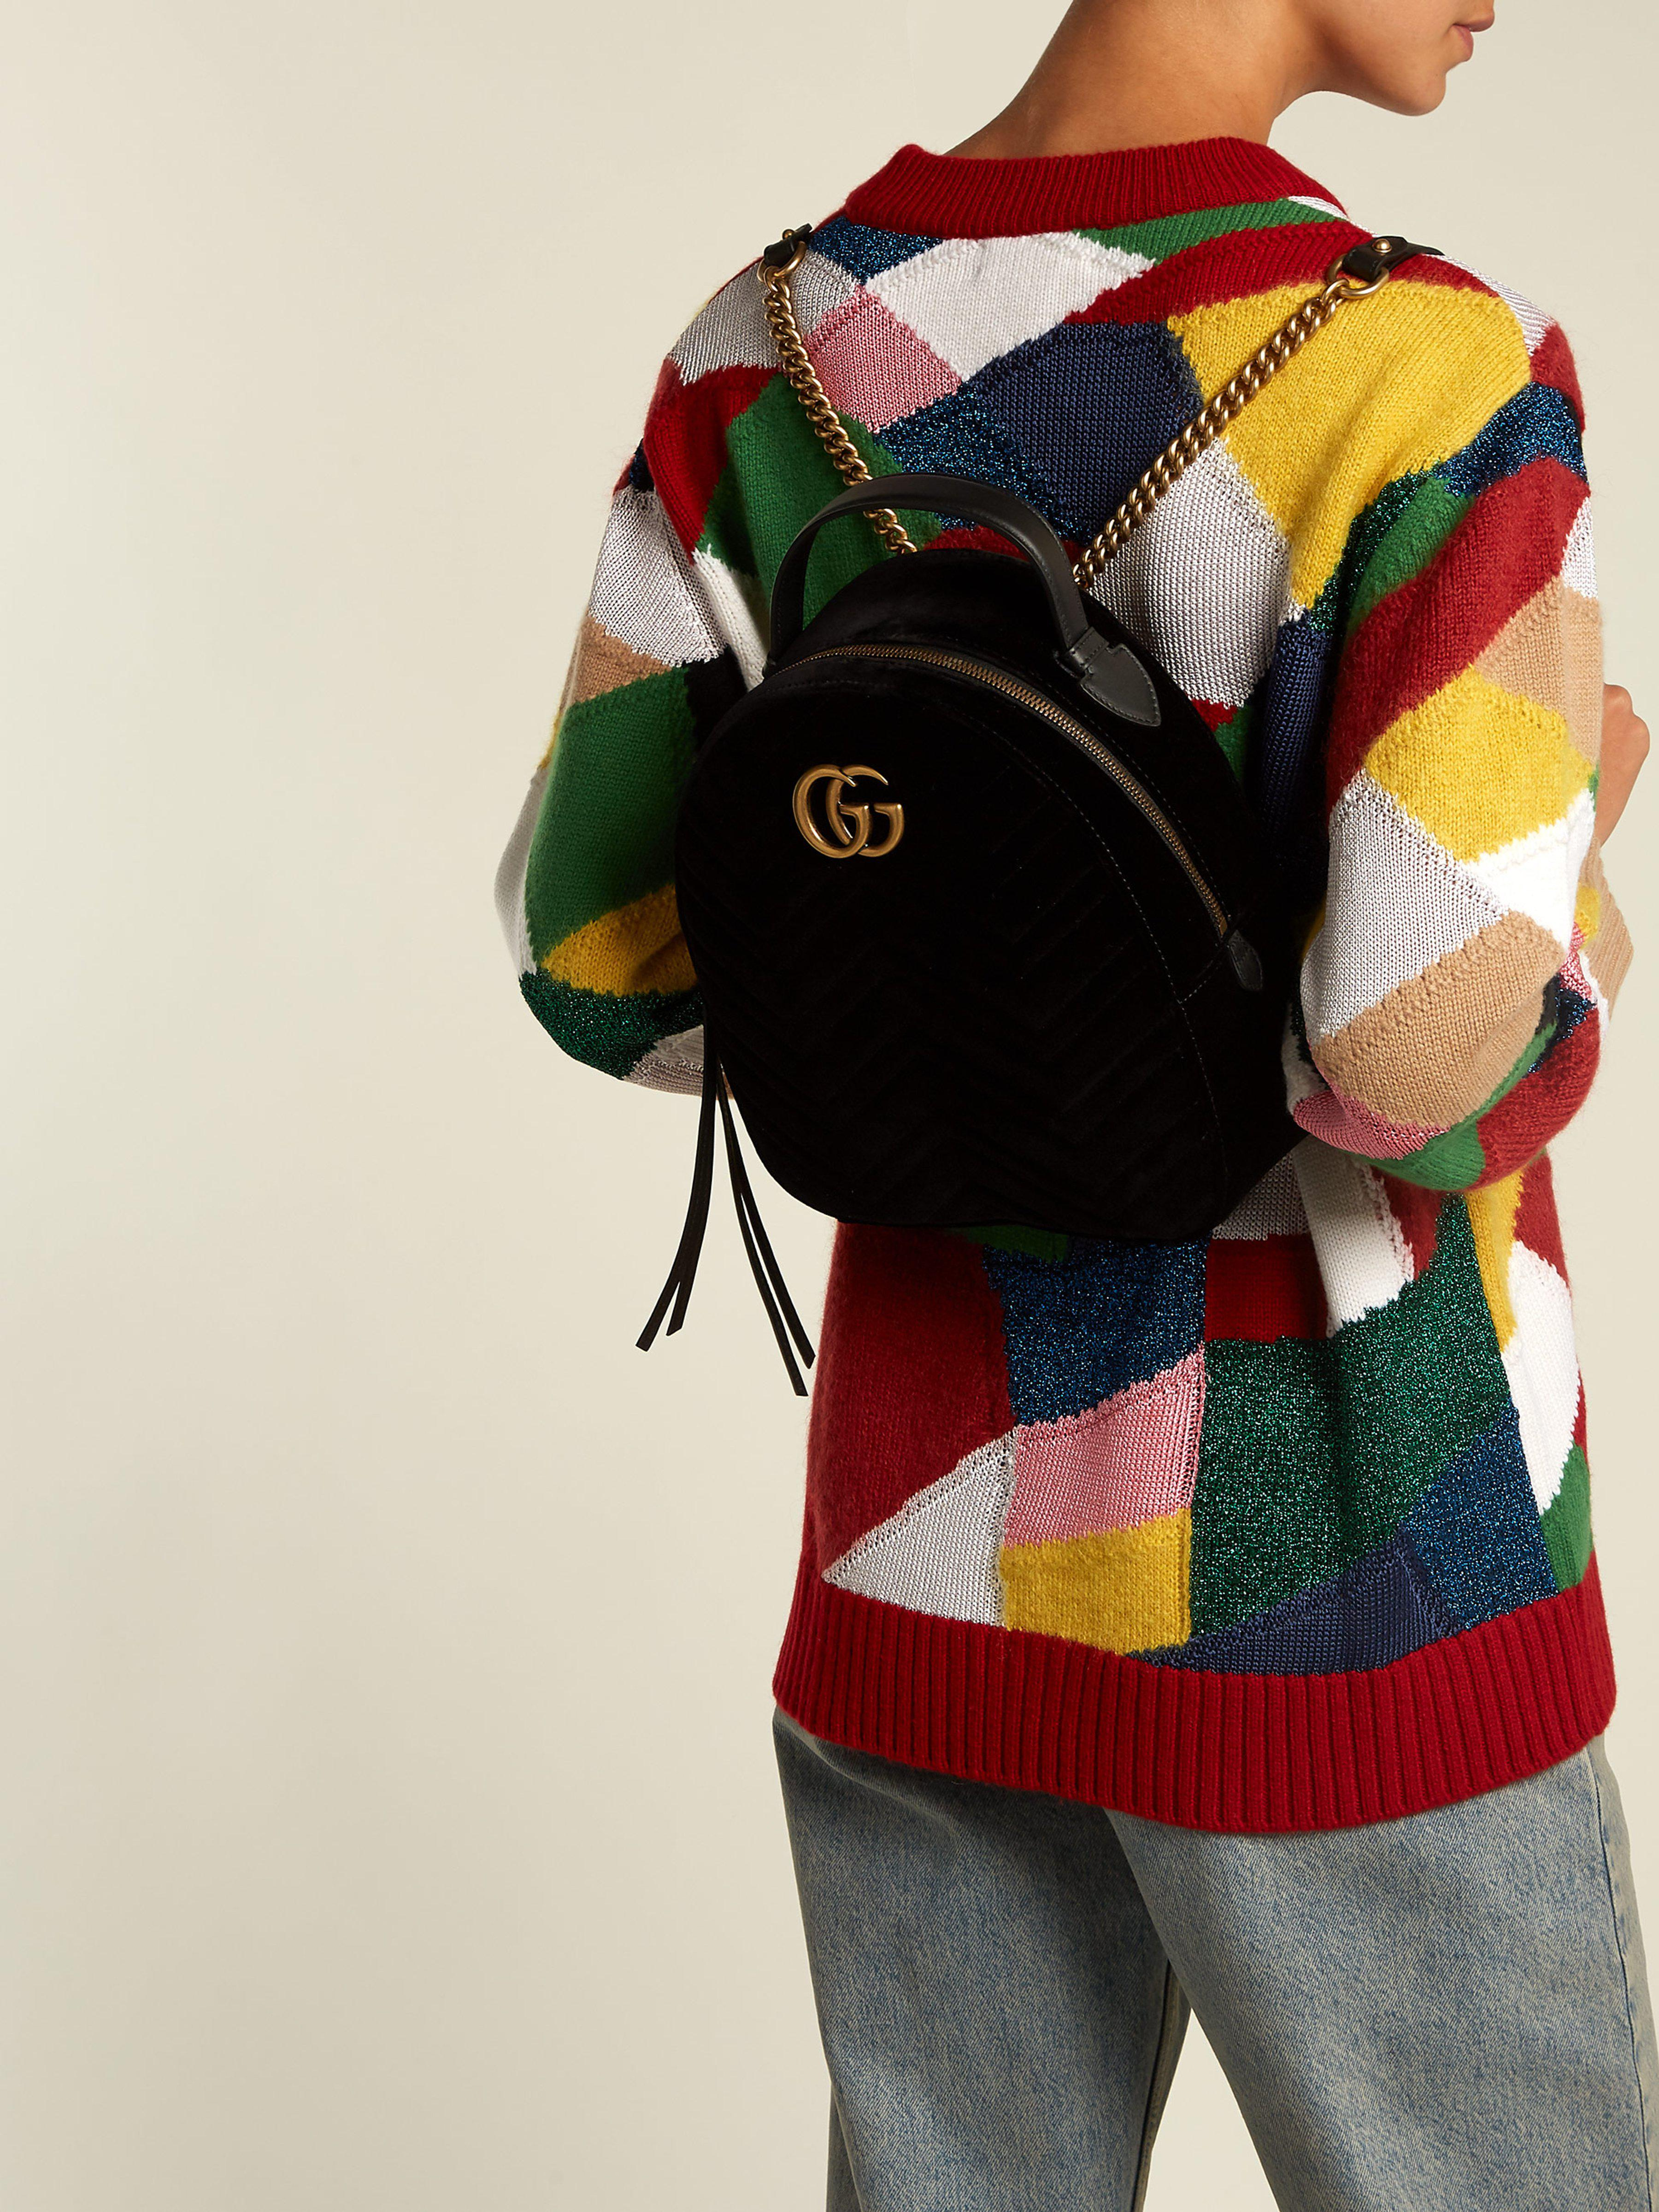 Gucci Gg Marmont Velvet Backpack in Black - Lyst a1872581c5a0e